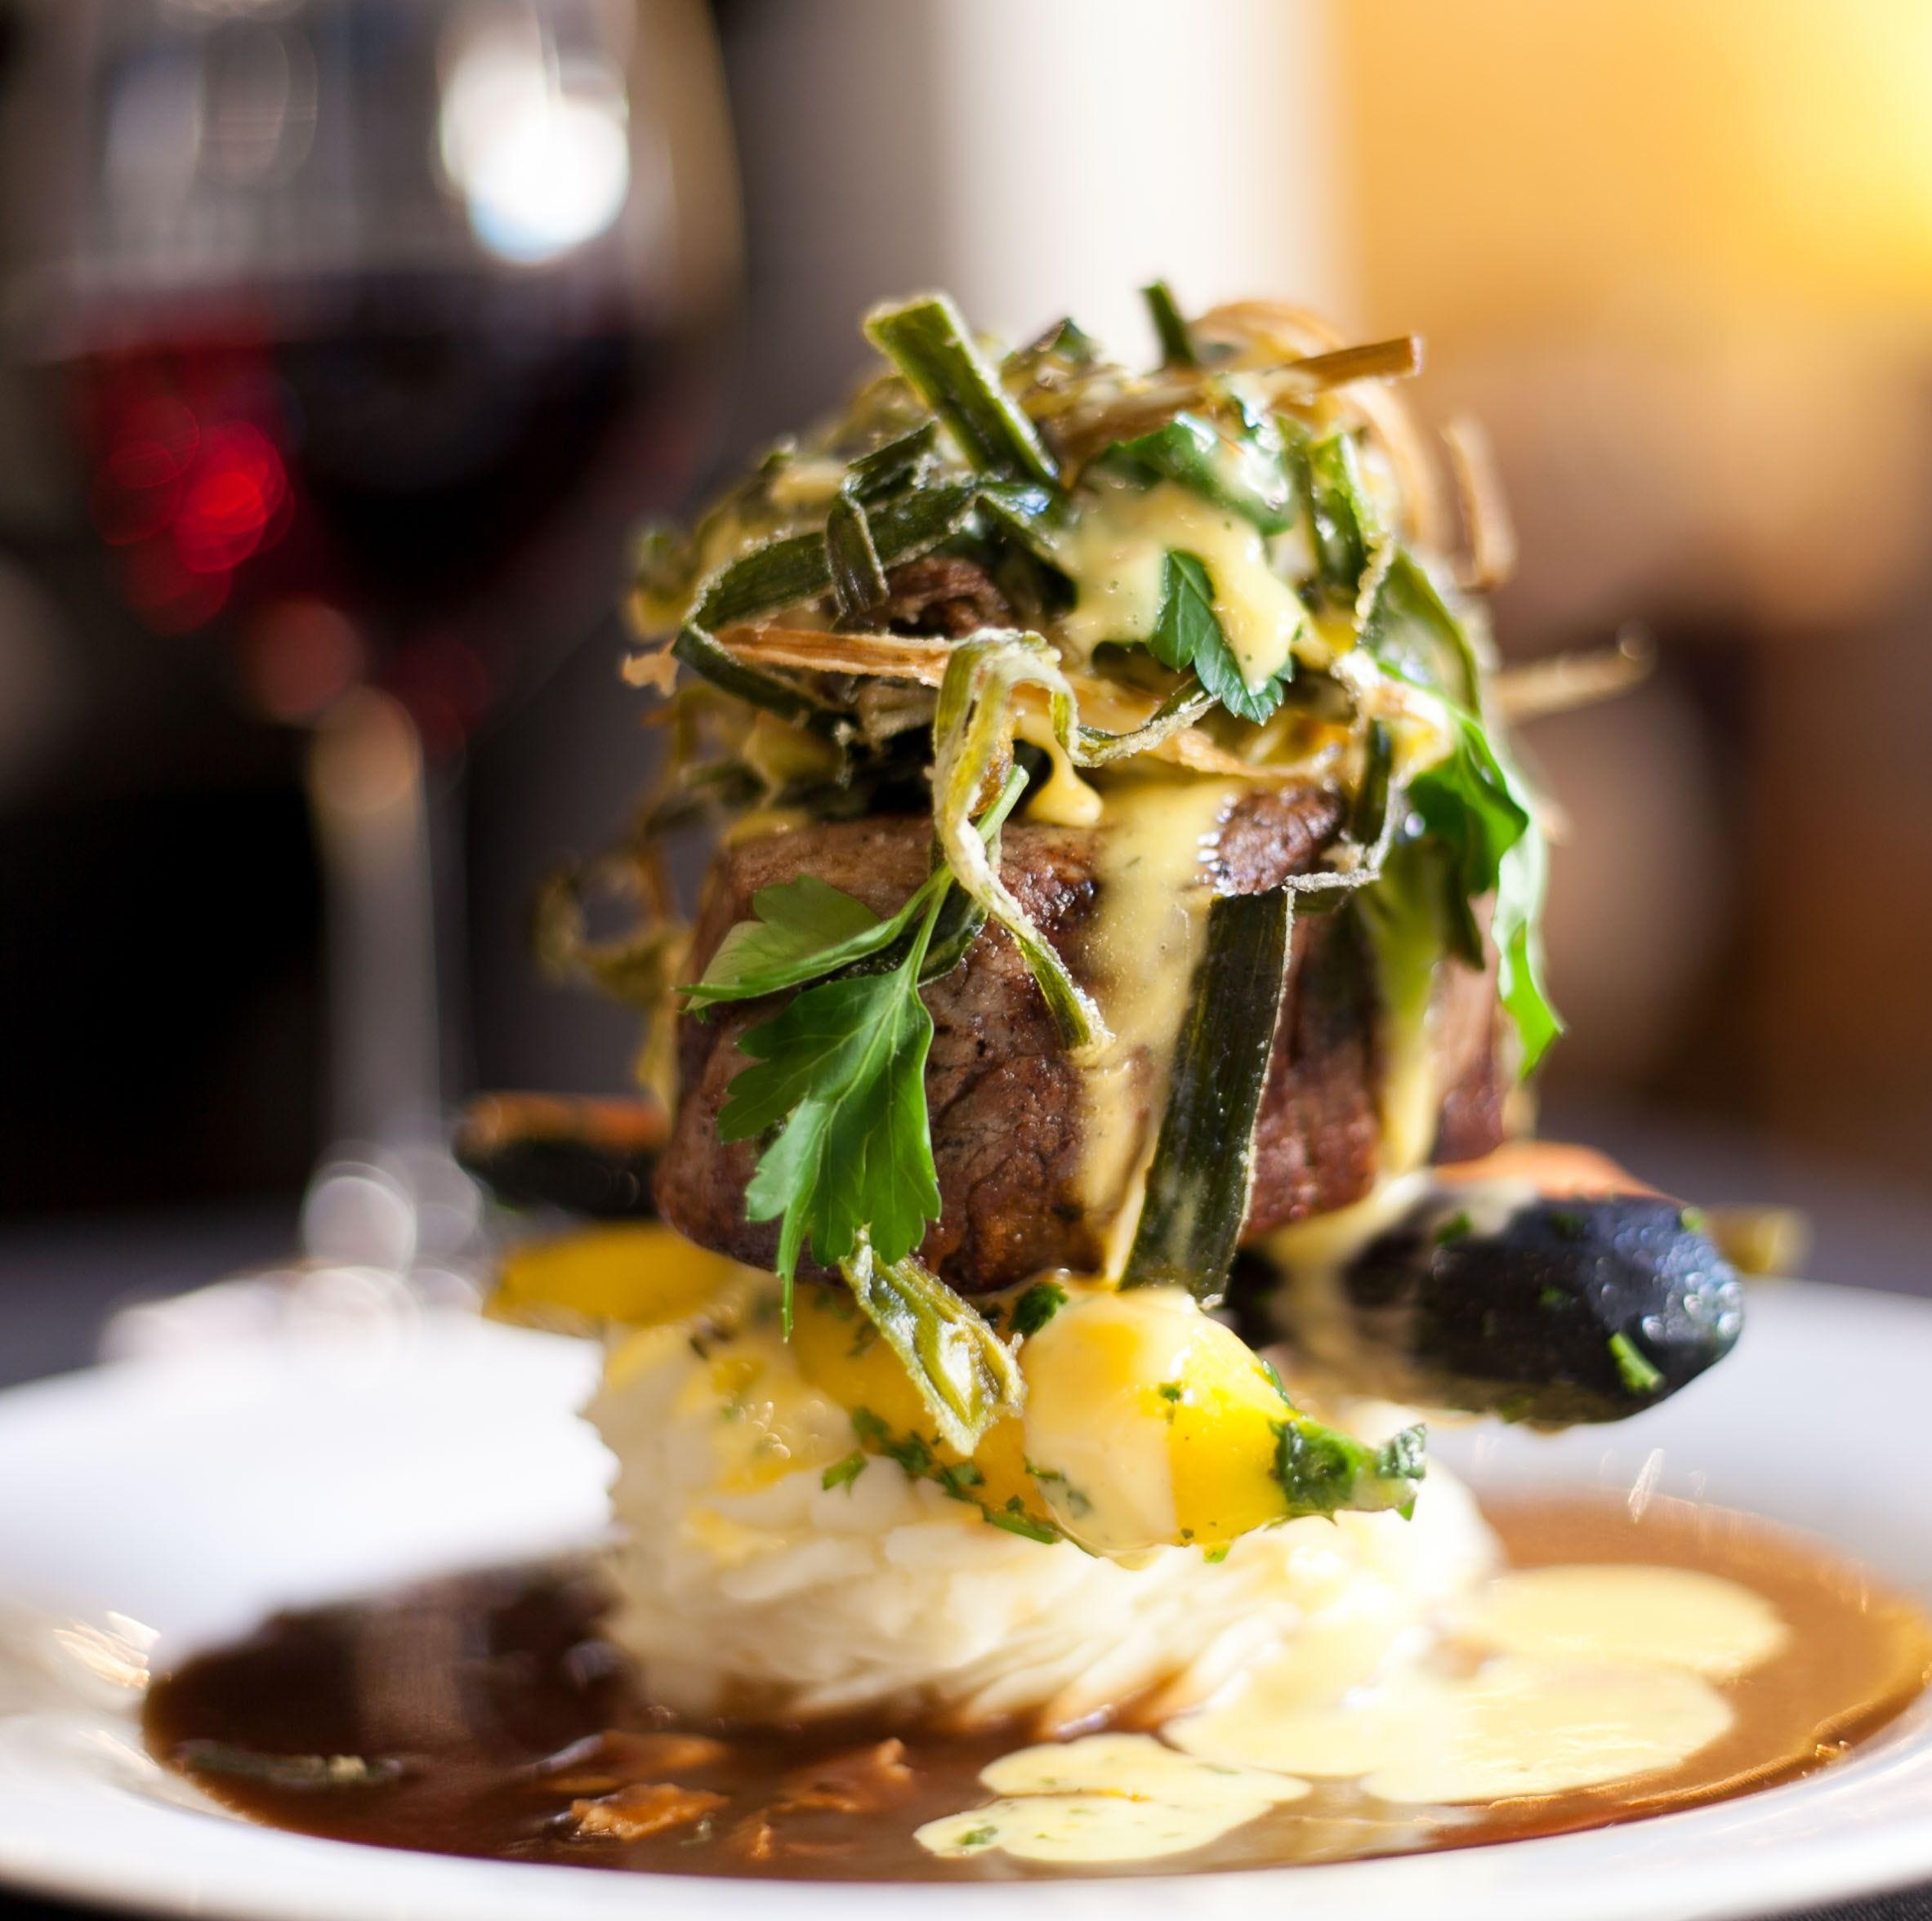 Here are 6 high-end Brevard restaurants we think you should try, plus 5 other great ones